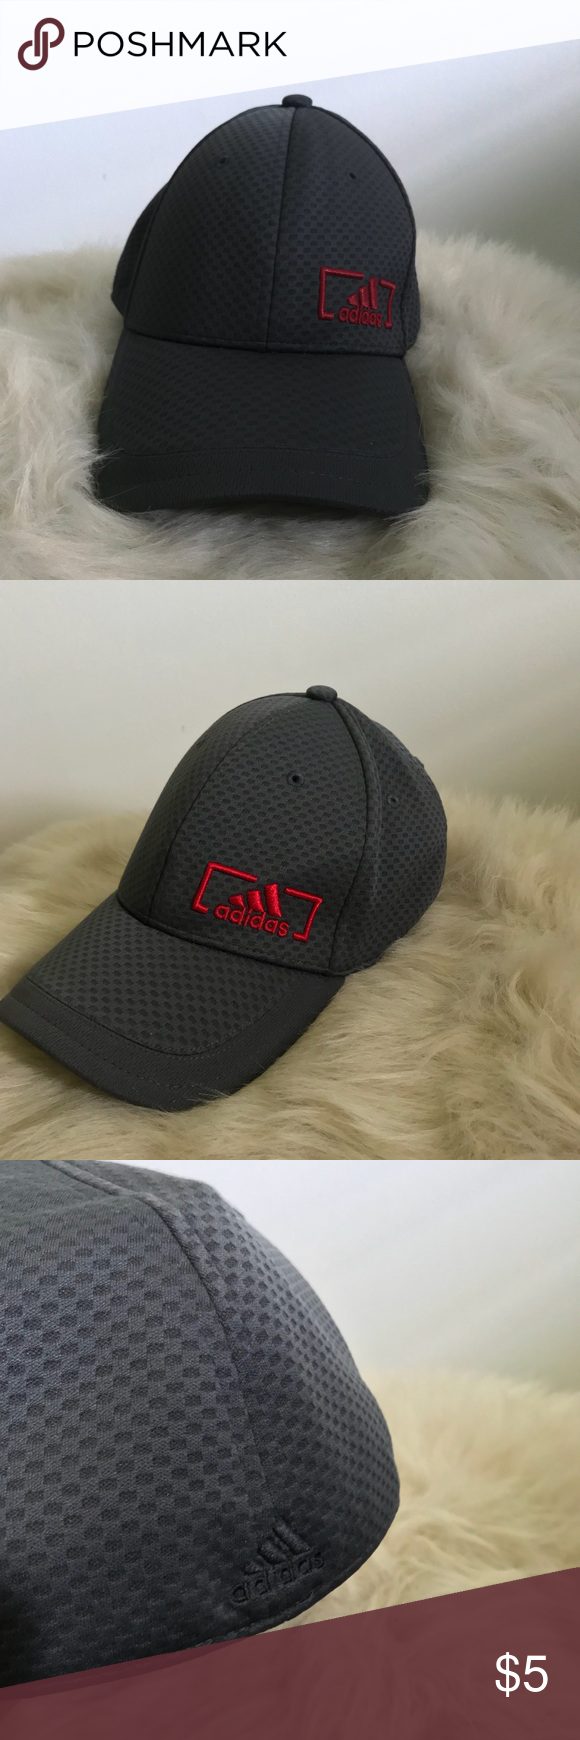 Adidas Dad Hat Amplifier Stretch Fit Cap Condition Nwot Color Night Grey Scarlet Material 100 Polyester A Flex Pat Adidas Dad Hat Dad Hats Fit Women